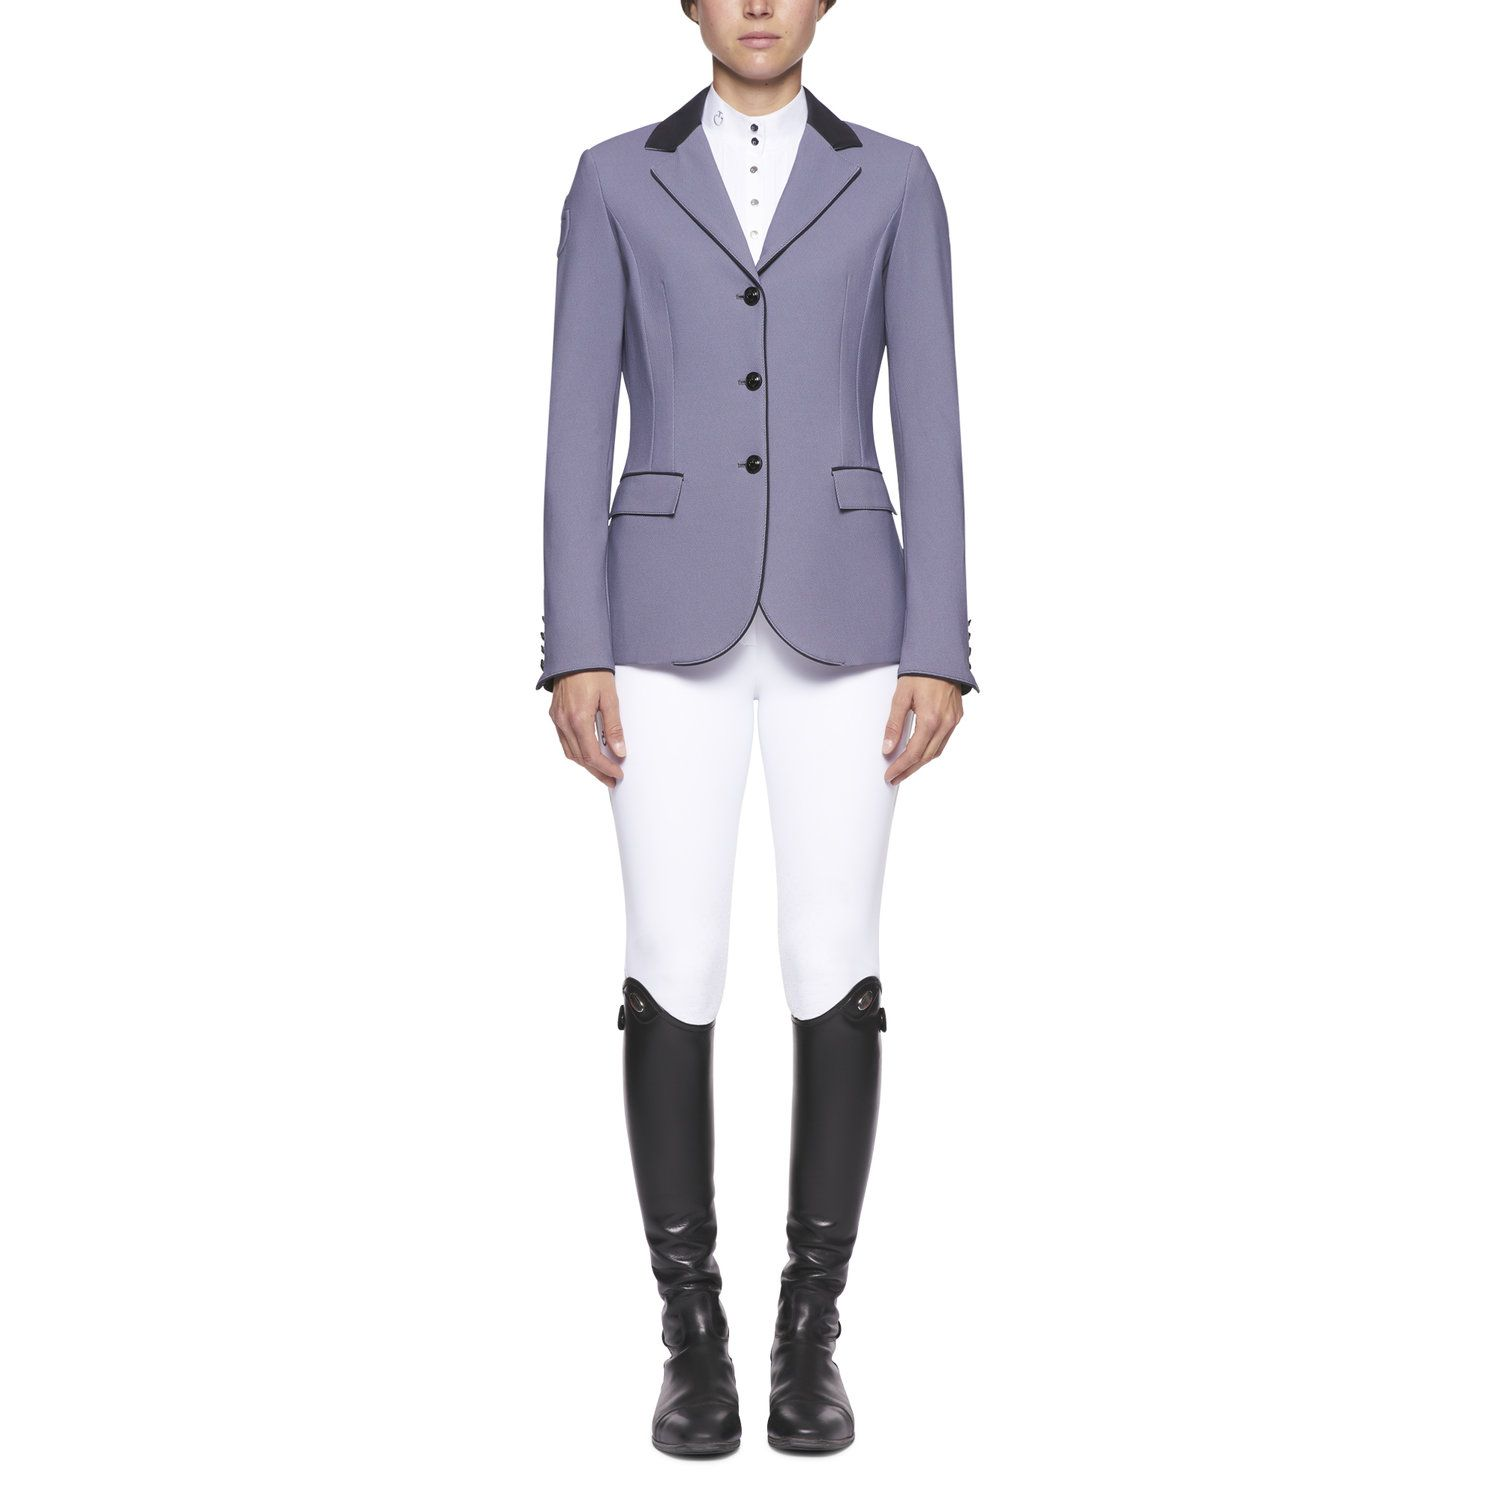 Women's competition riding jacket.